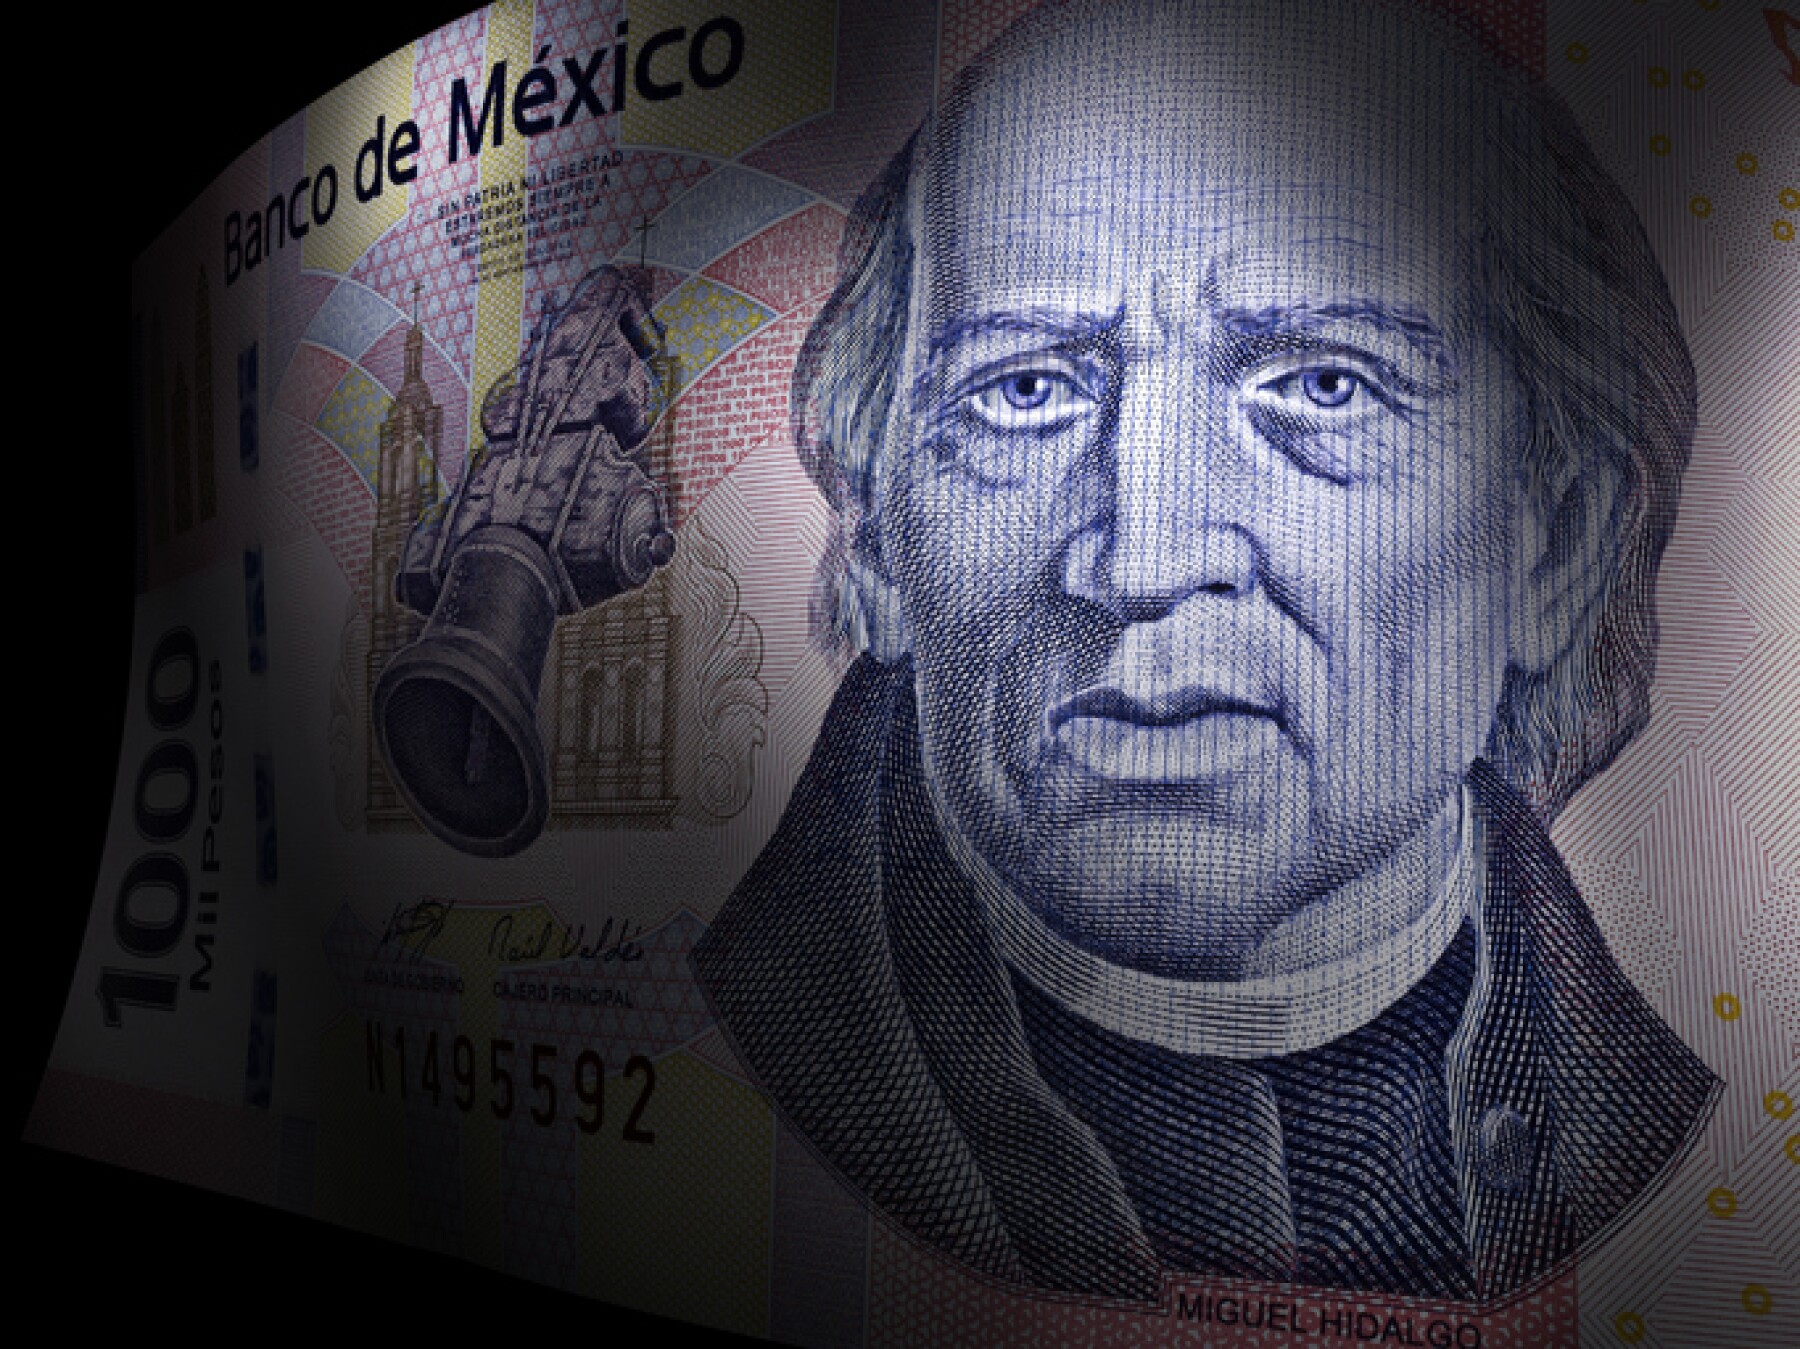 Miguel Hidalgo's close up in a thousand pesos bill